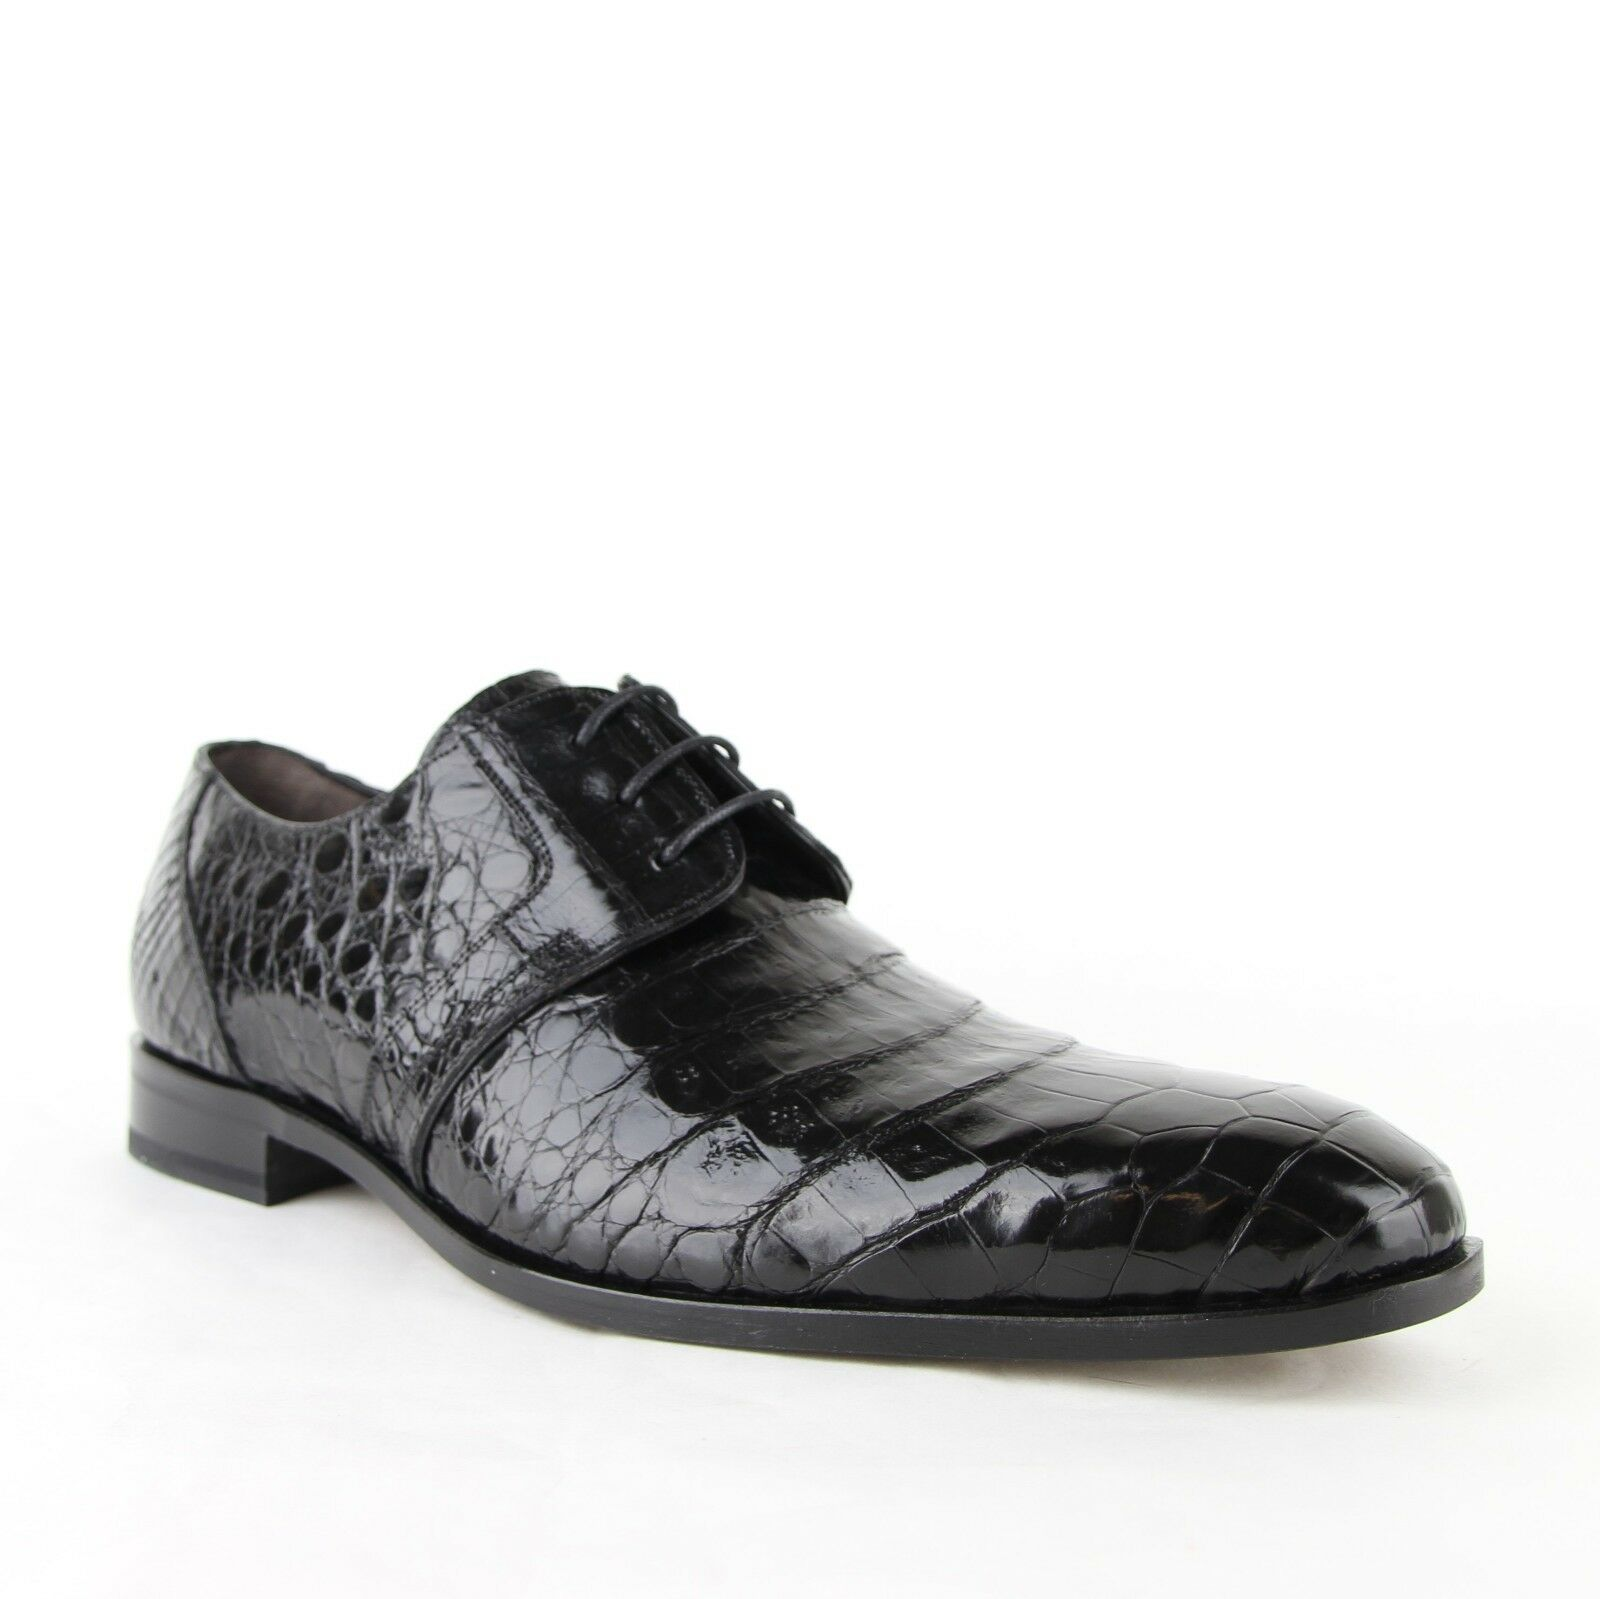 Neuf Chaussures Homme Crocodile Noir Derby Lacets Robe Chaussures